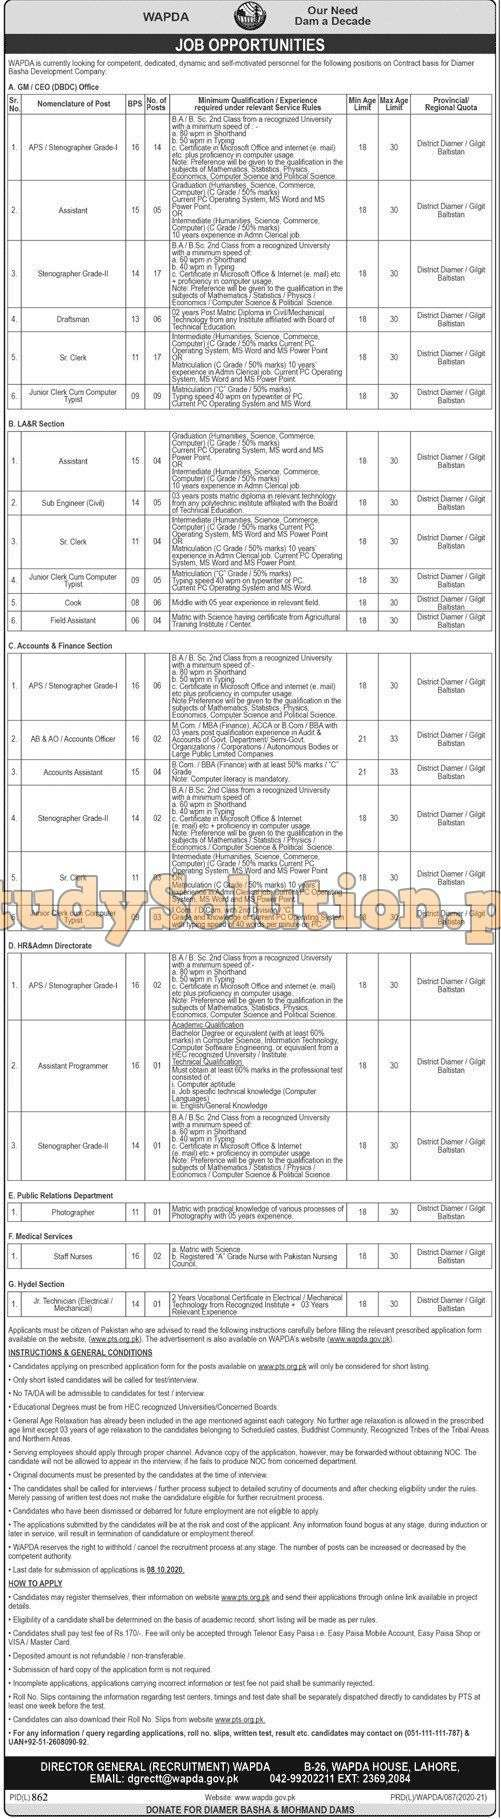 New WAPDA Jobs September 2020